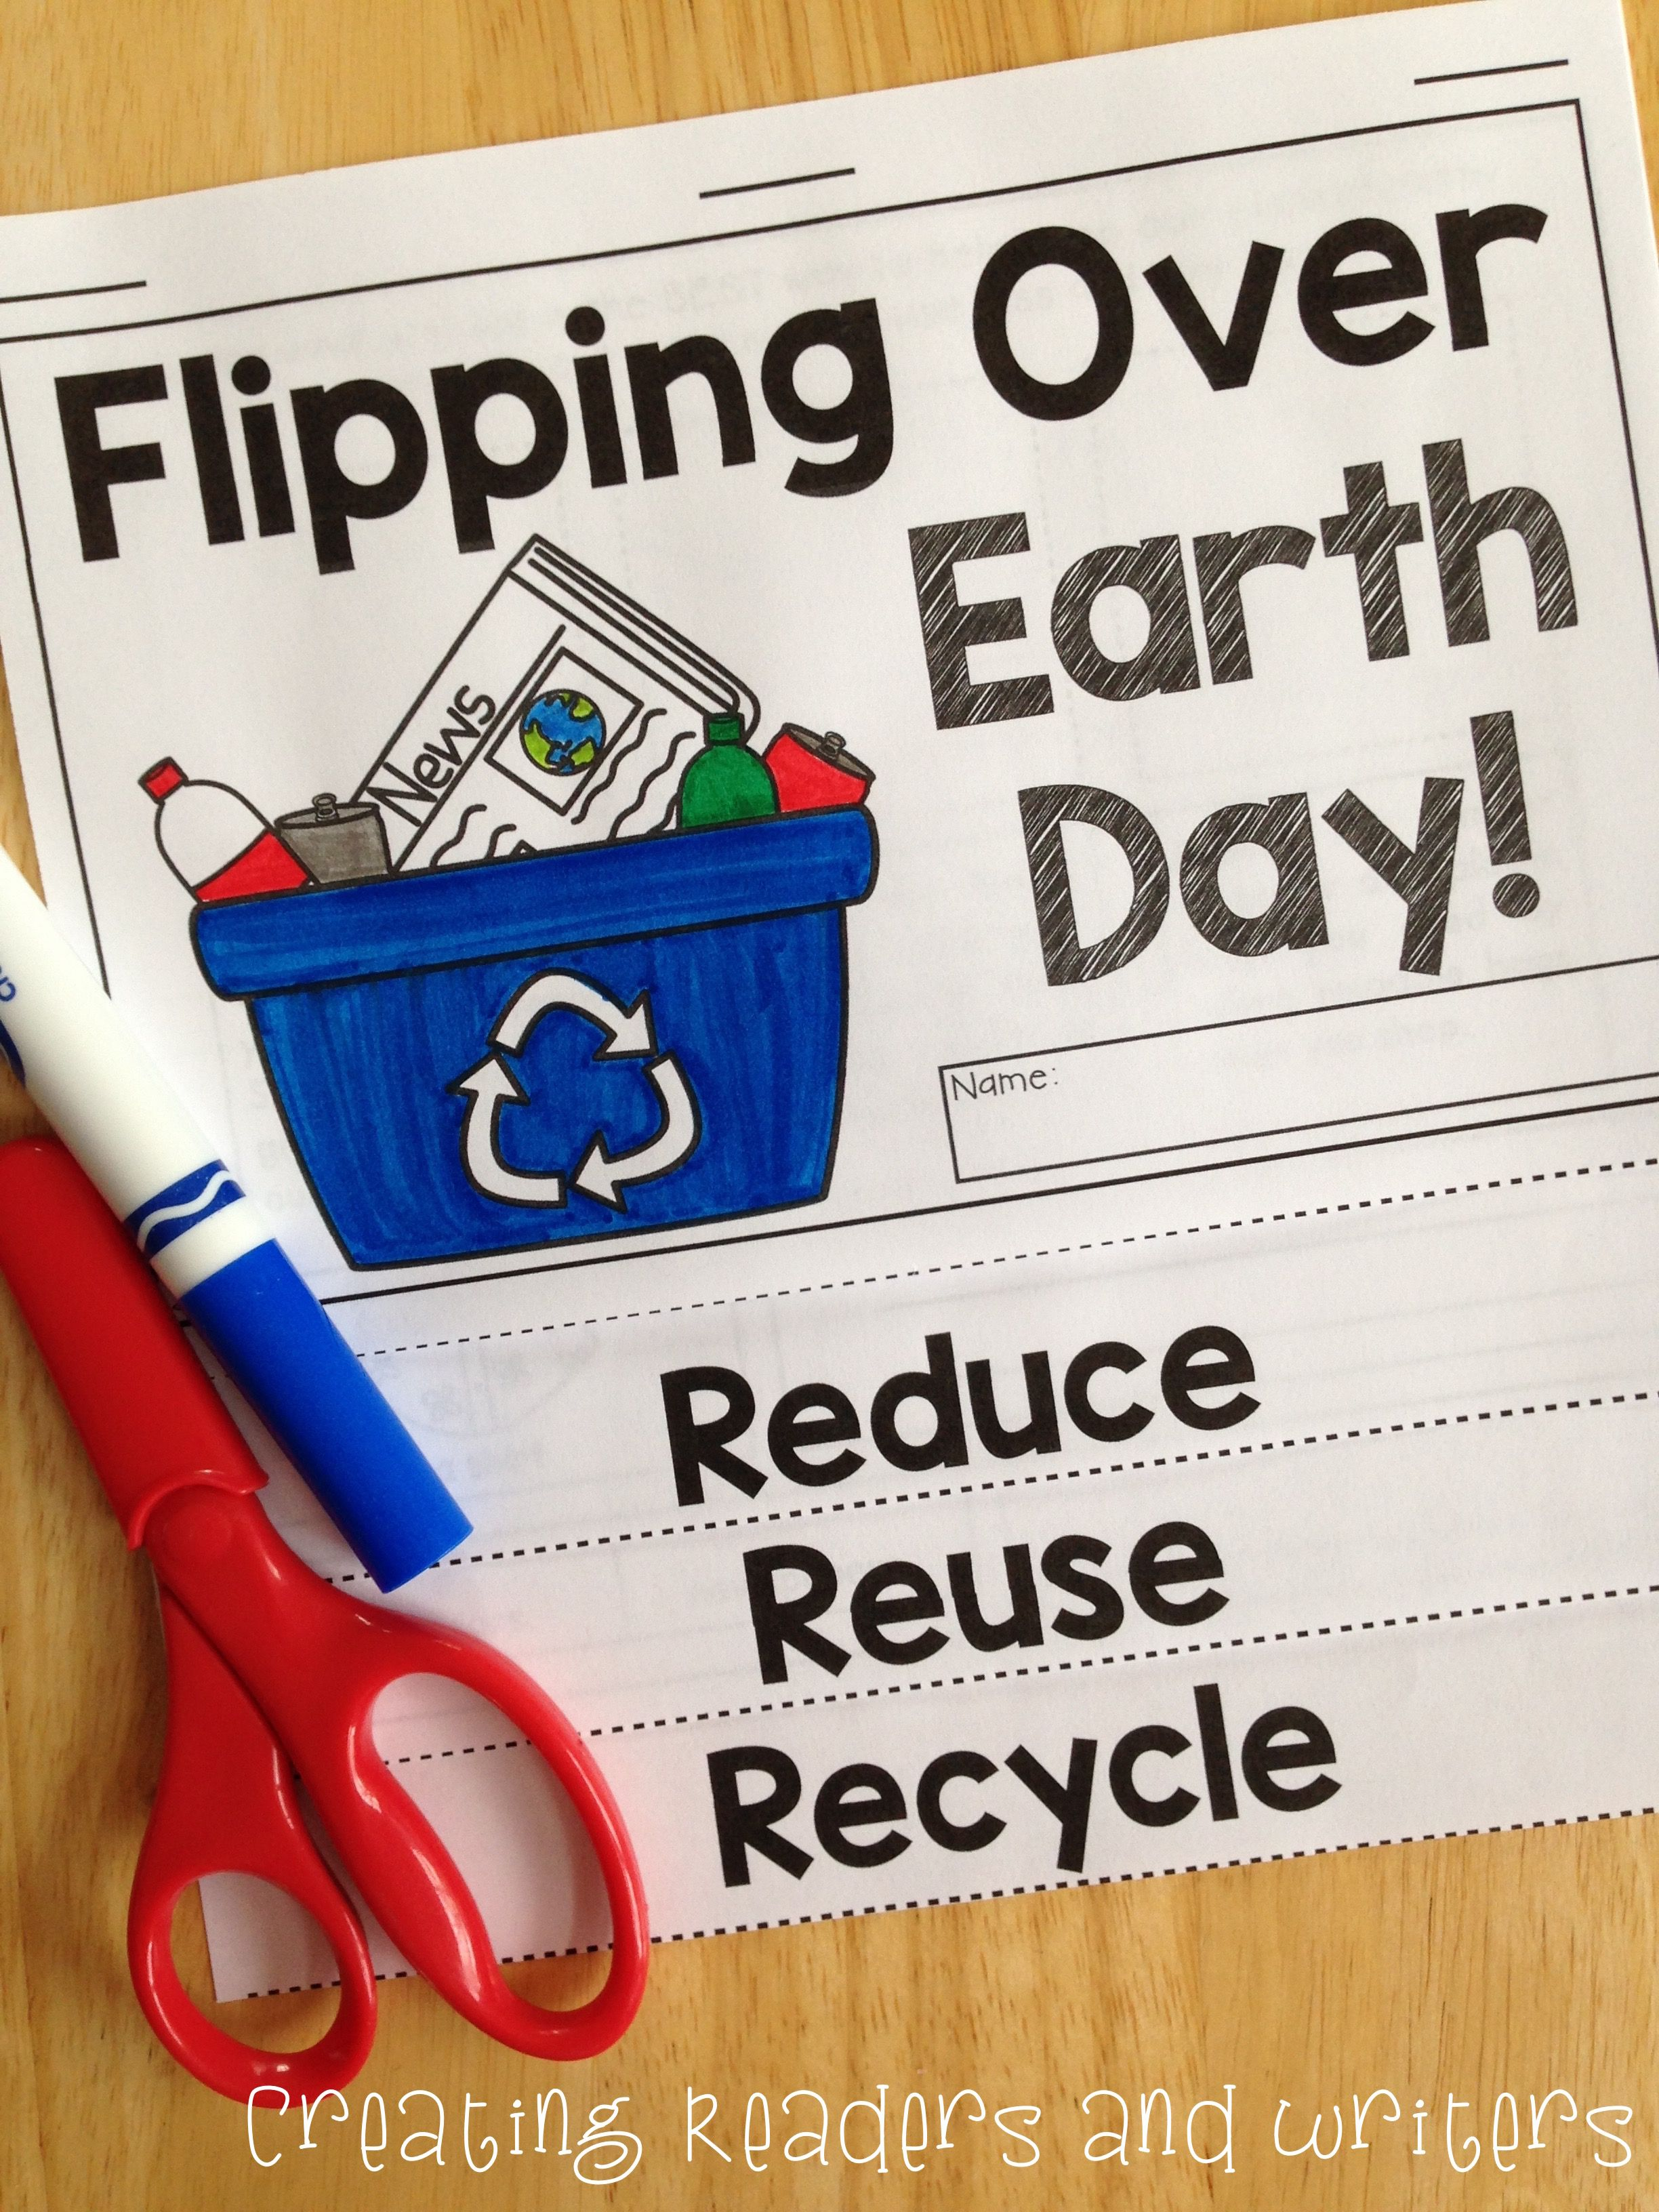 Flipping Over Earth Day Two Differentiated Flip Books For K 3